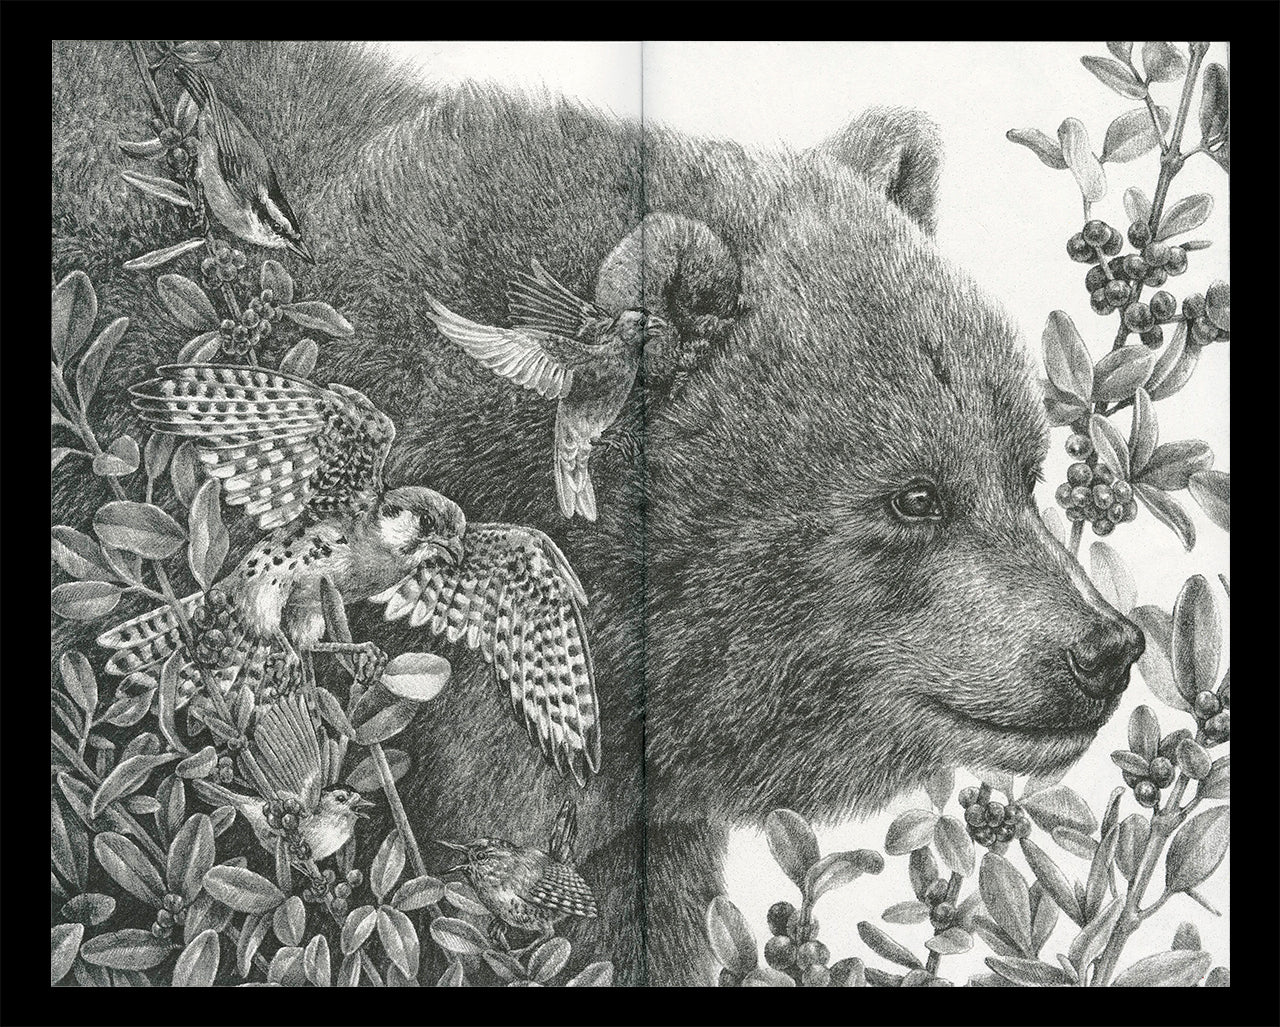 """Interior spread of Zoe Keller's zine """"Drawings"""" showing a graphite drawing of a bear"""